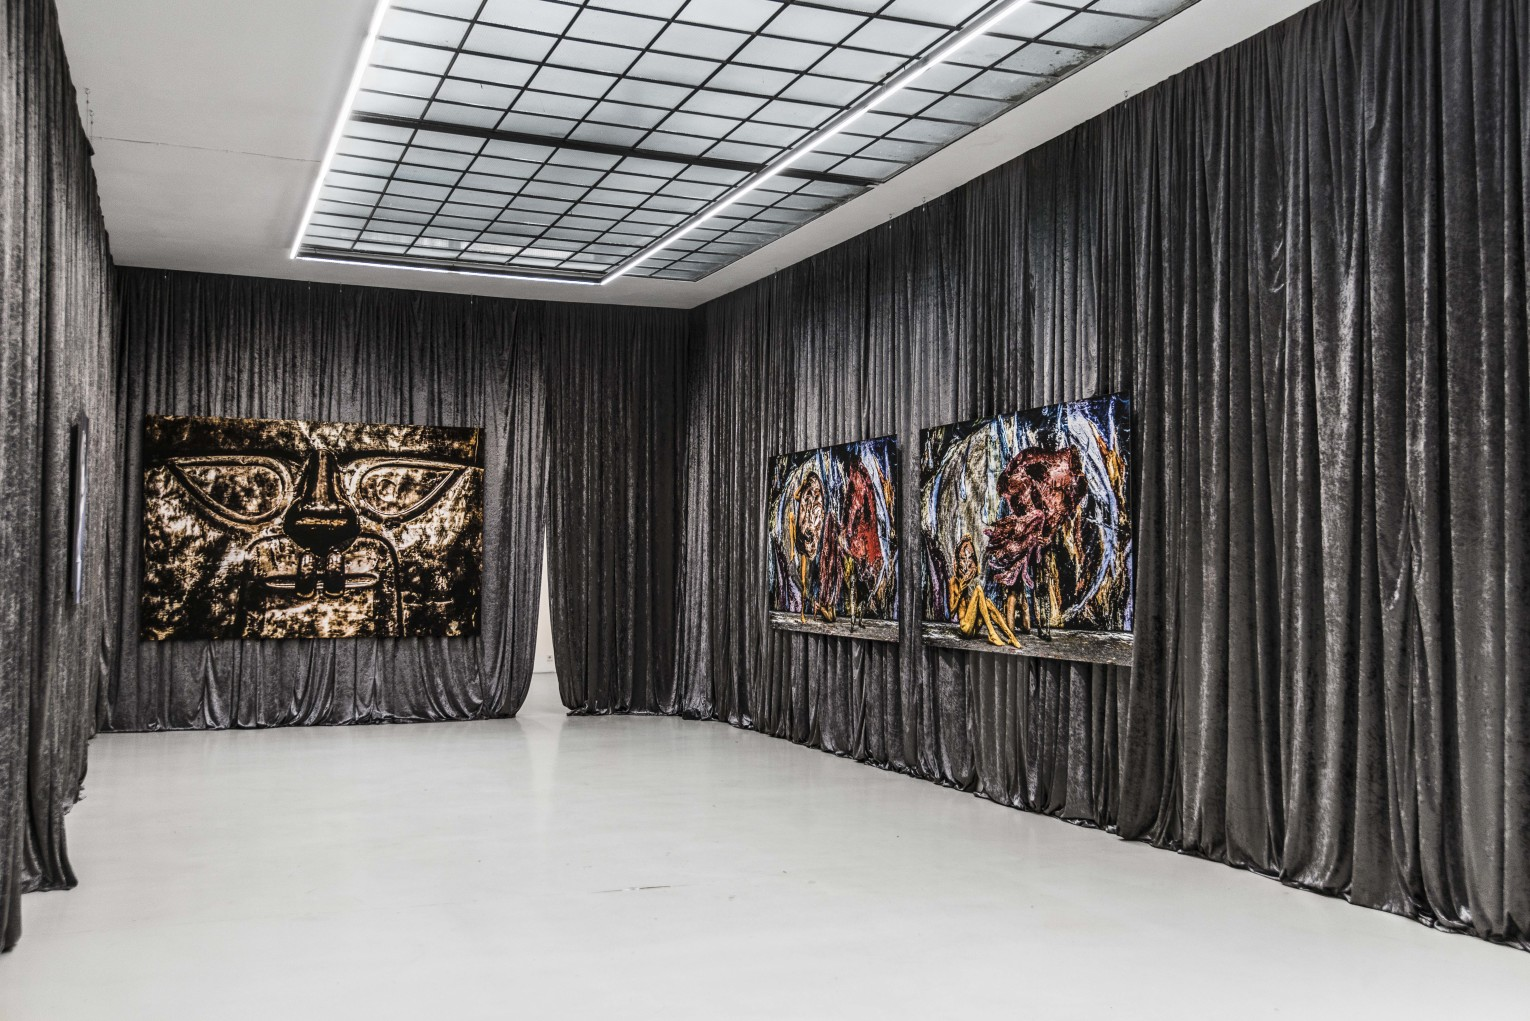 SOFIA BORGES | IT WAS A WHITE AND BLAZING BLIND FIRE 24 JANUARY - 29 FEBRUARY 2020